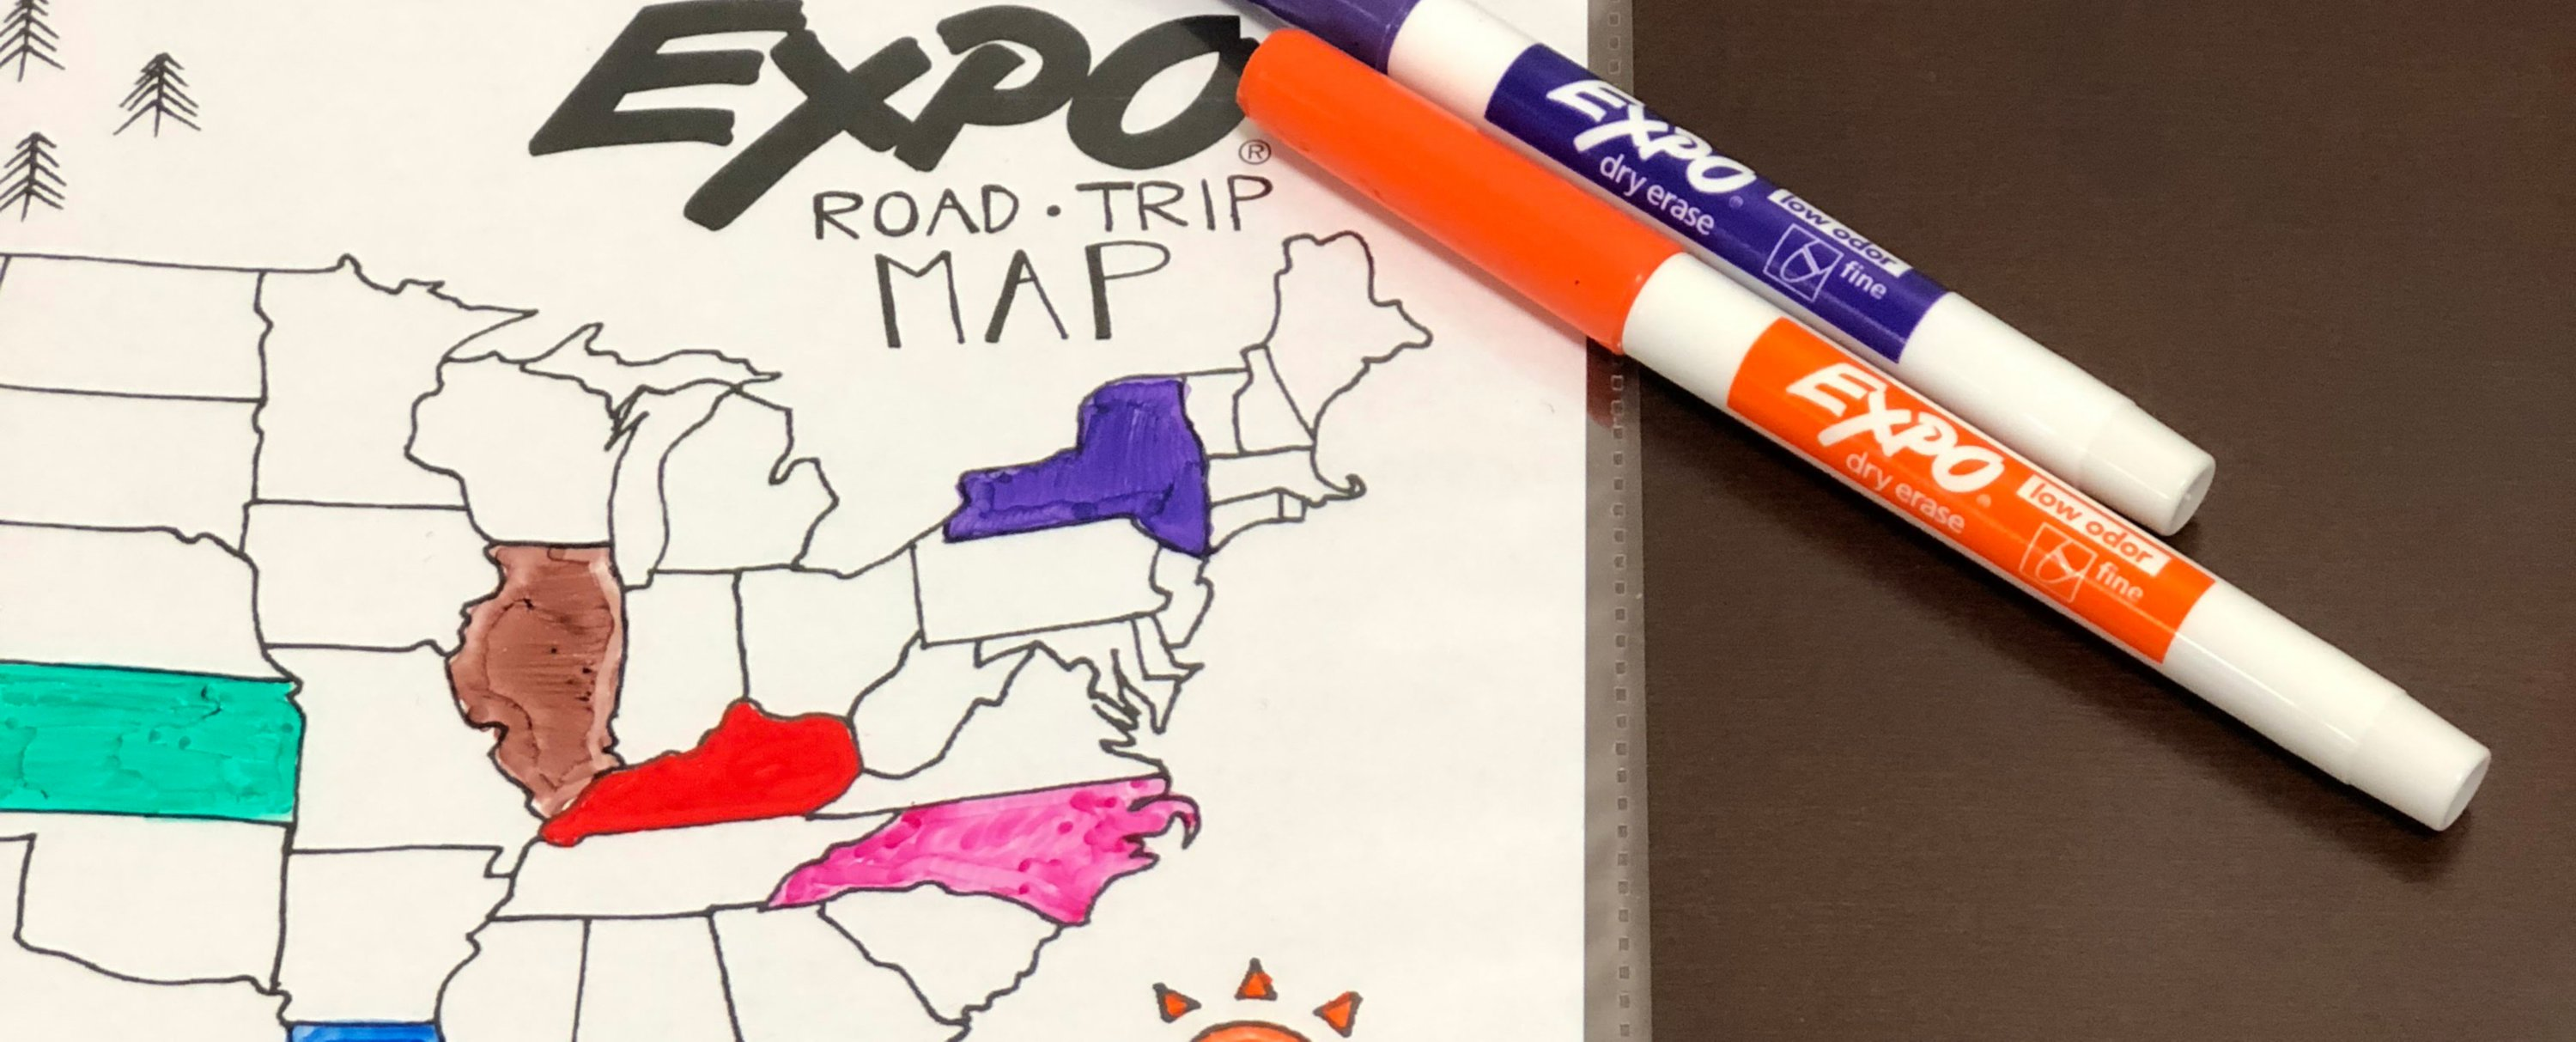 expo-road-trip-map-with-states-filled-in